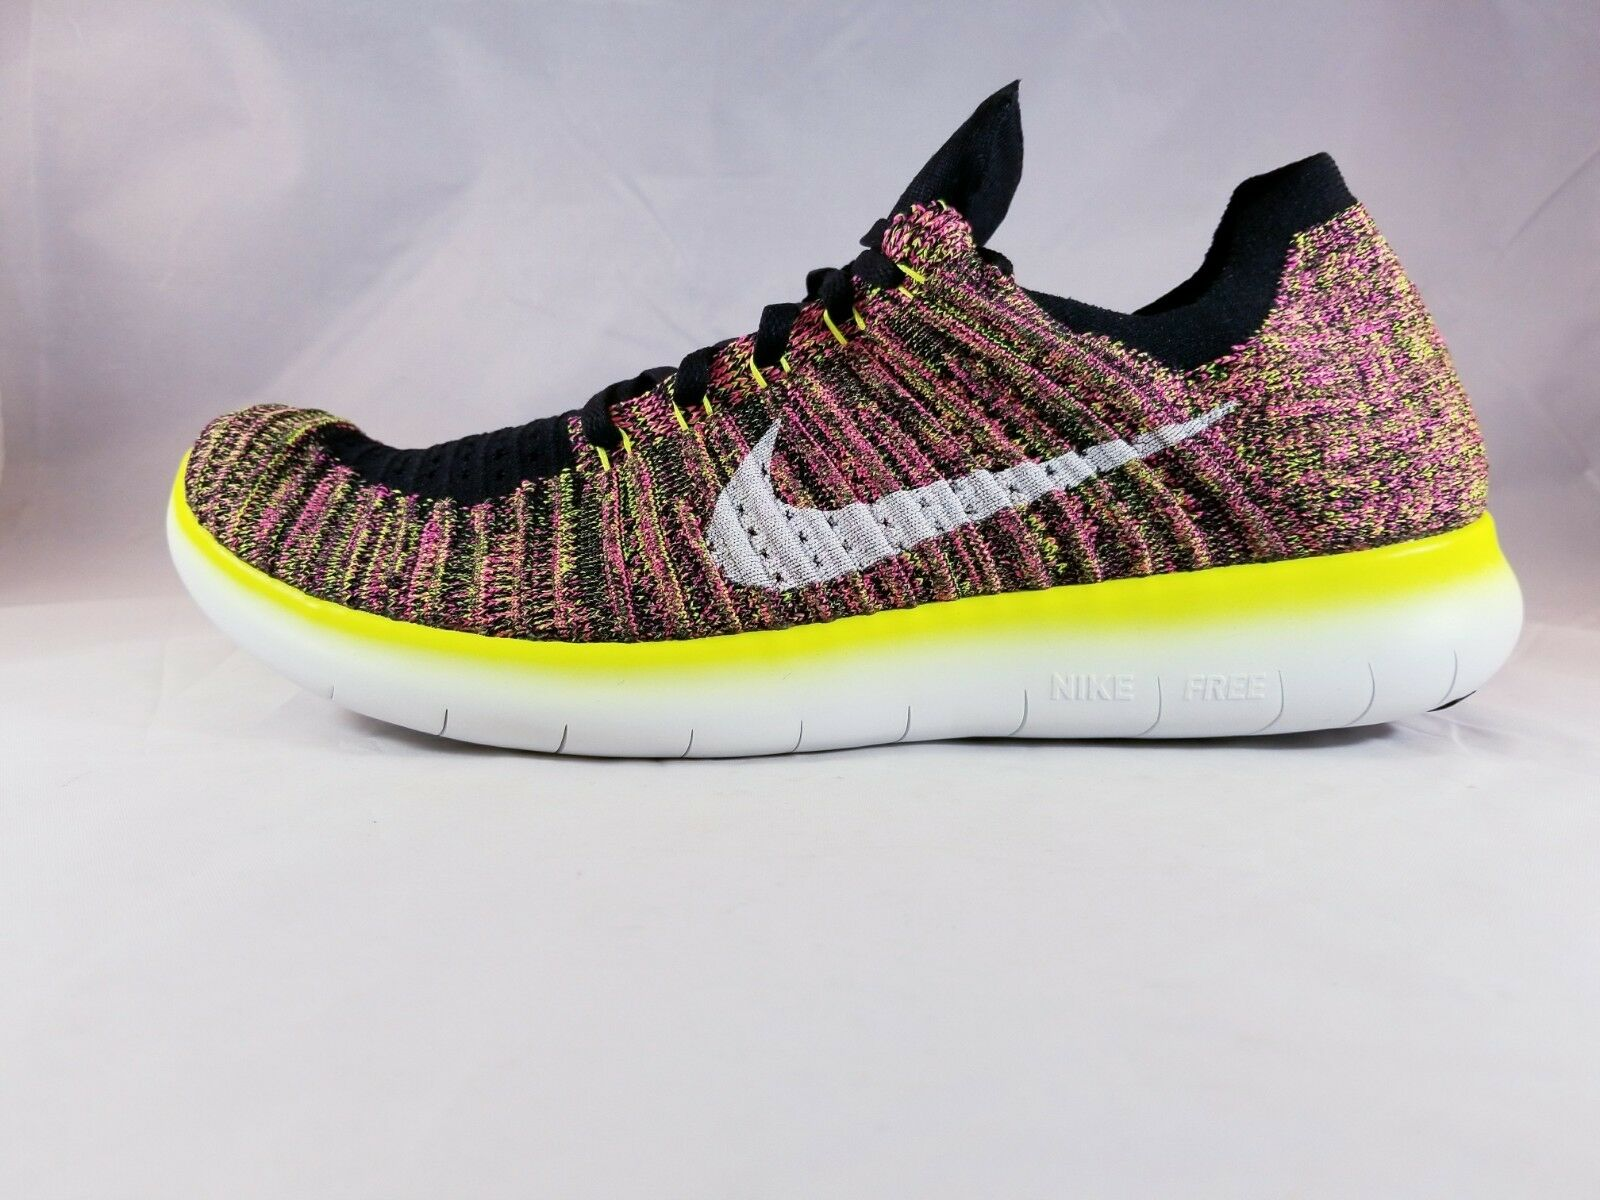 nike libre flyknit oc hommes chaussures chaussures